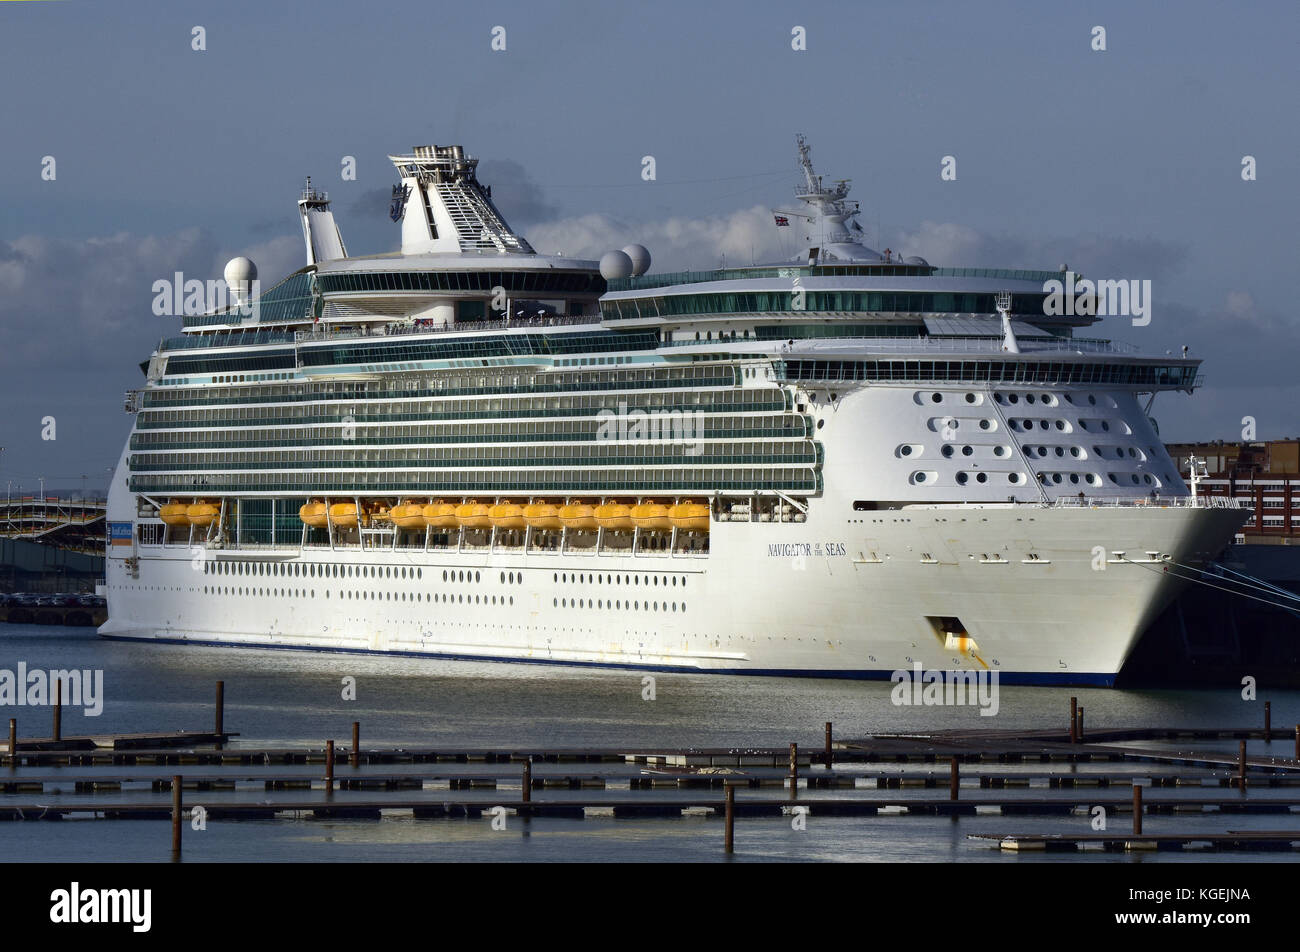 the P and O cruise liner the navigator of the seas alongside in dock or port of Southampton. Cruising ships and Stock Photo